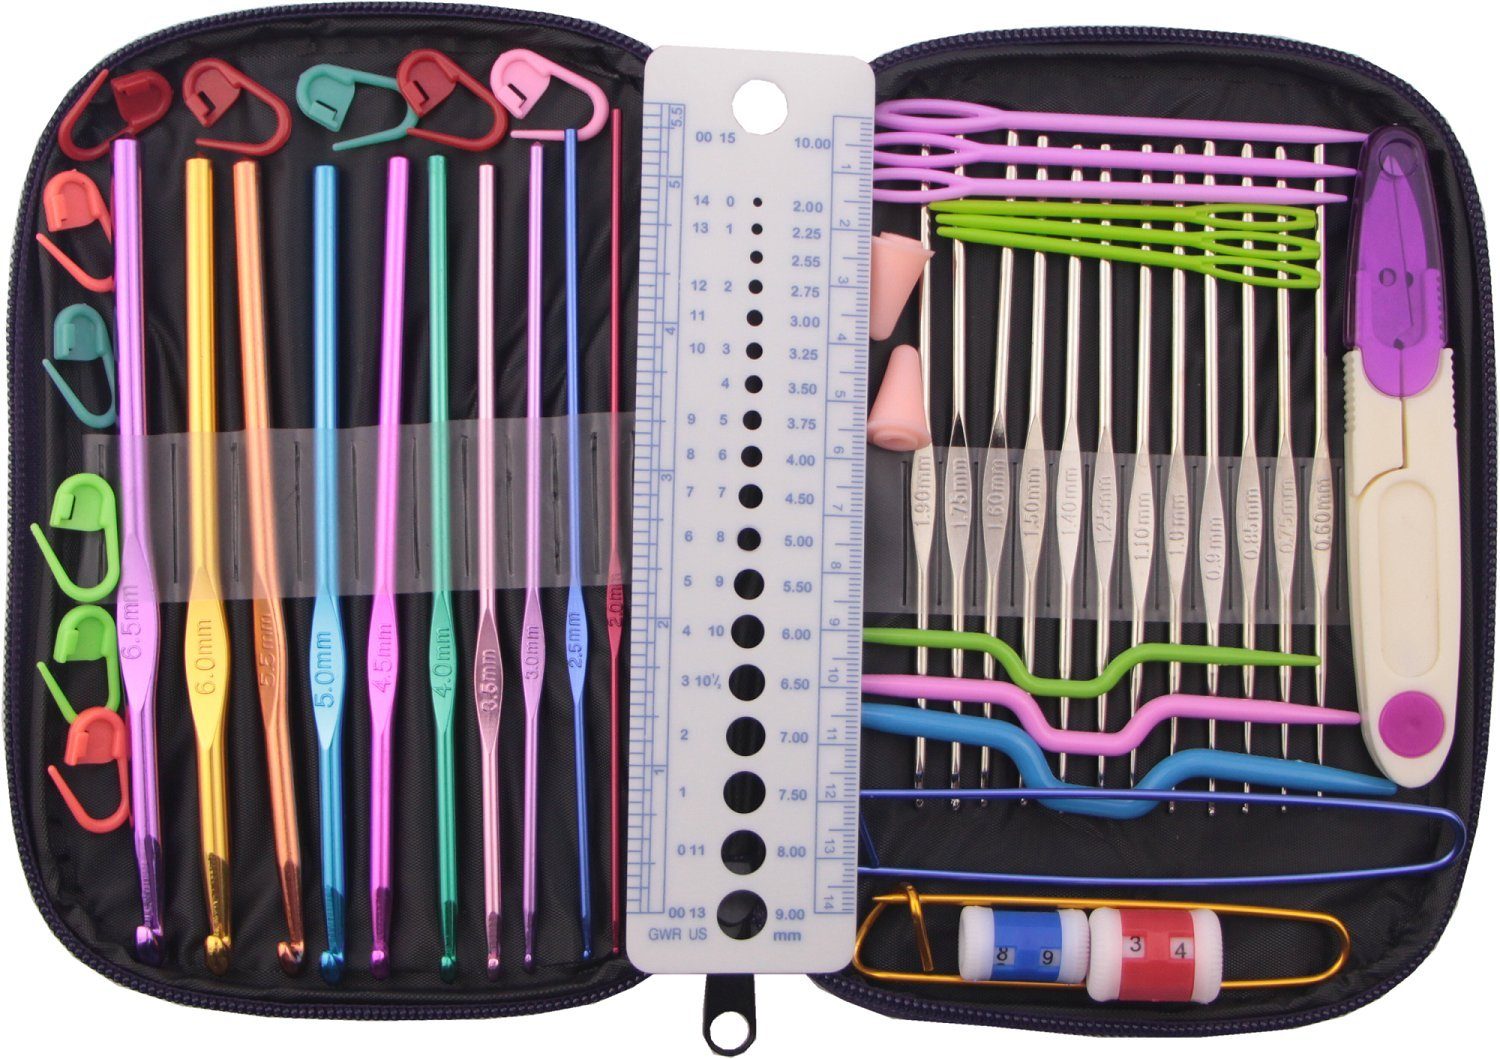 GYBest 49 Pieces Crochet Hooks Yarn Knitting Needles Sewing Tools Full Set Knit Gauge Scissors Stitch Holders with Purple Case 4336923037